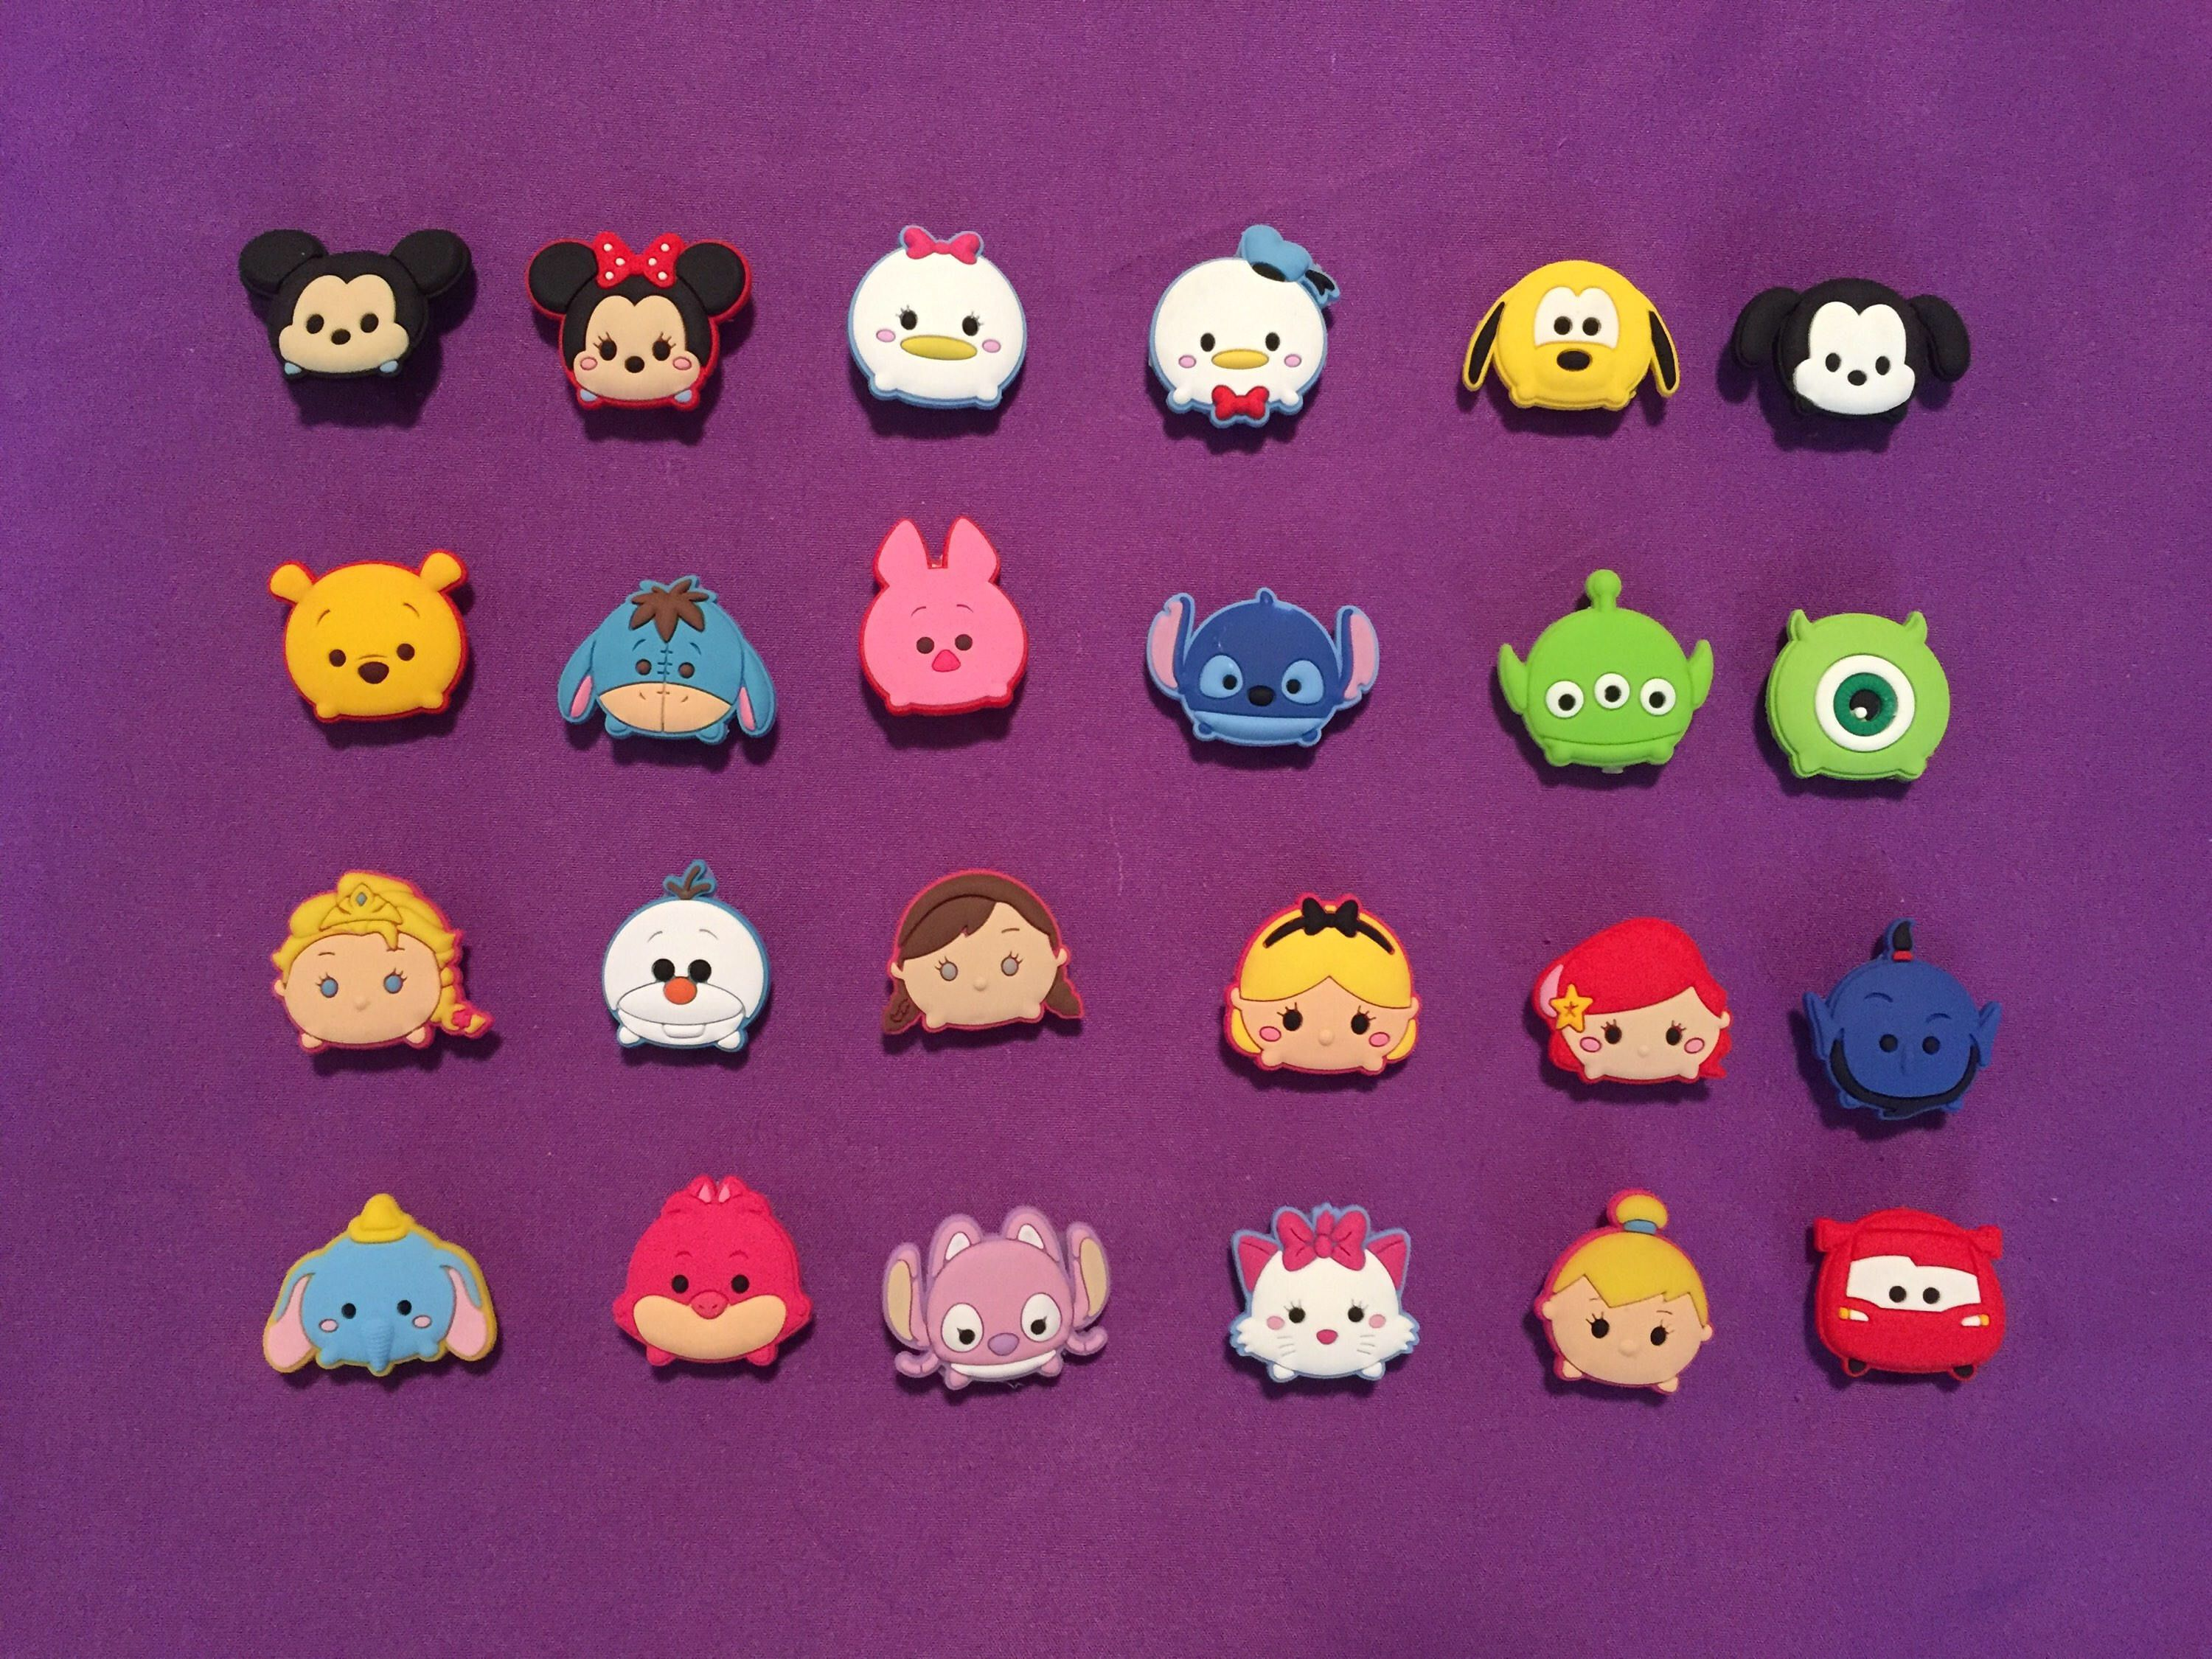 57cda1fc394 Party Favors · Belgium · 24-pc or 8-pc Disney Tsum Tsum Shoe Charms for  Crocs, Silicone